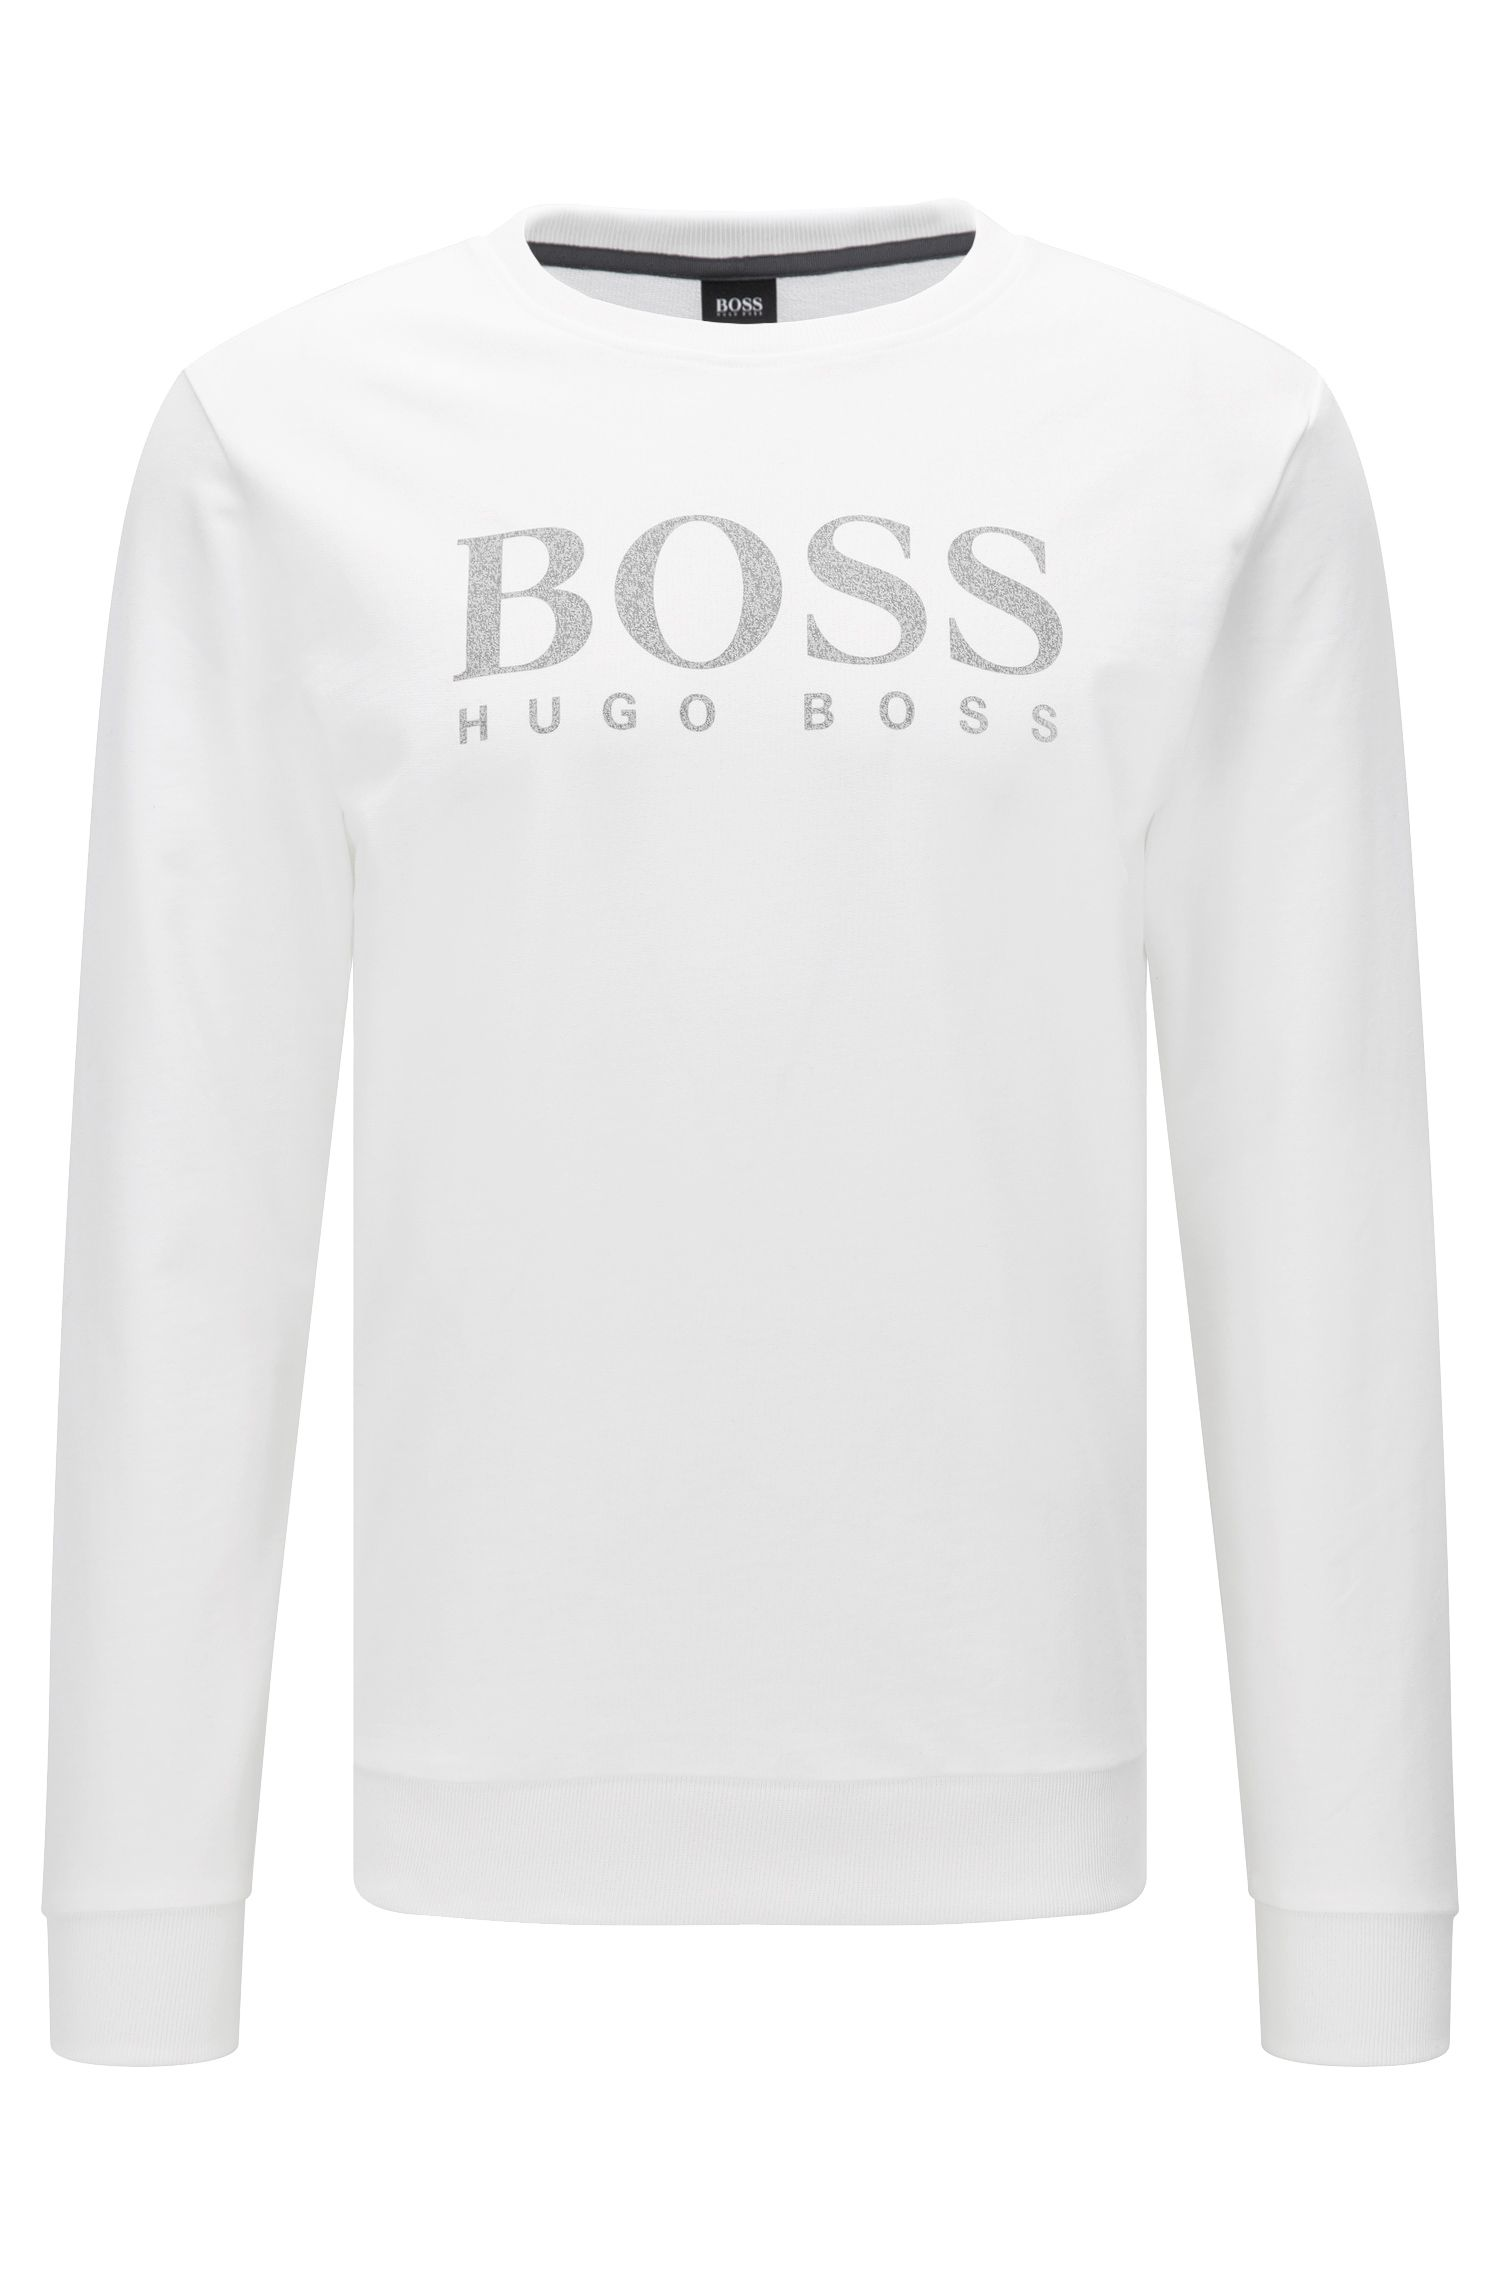 'Sweatshirt' | Logo-Print Cotton Sweatshirt